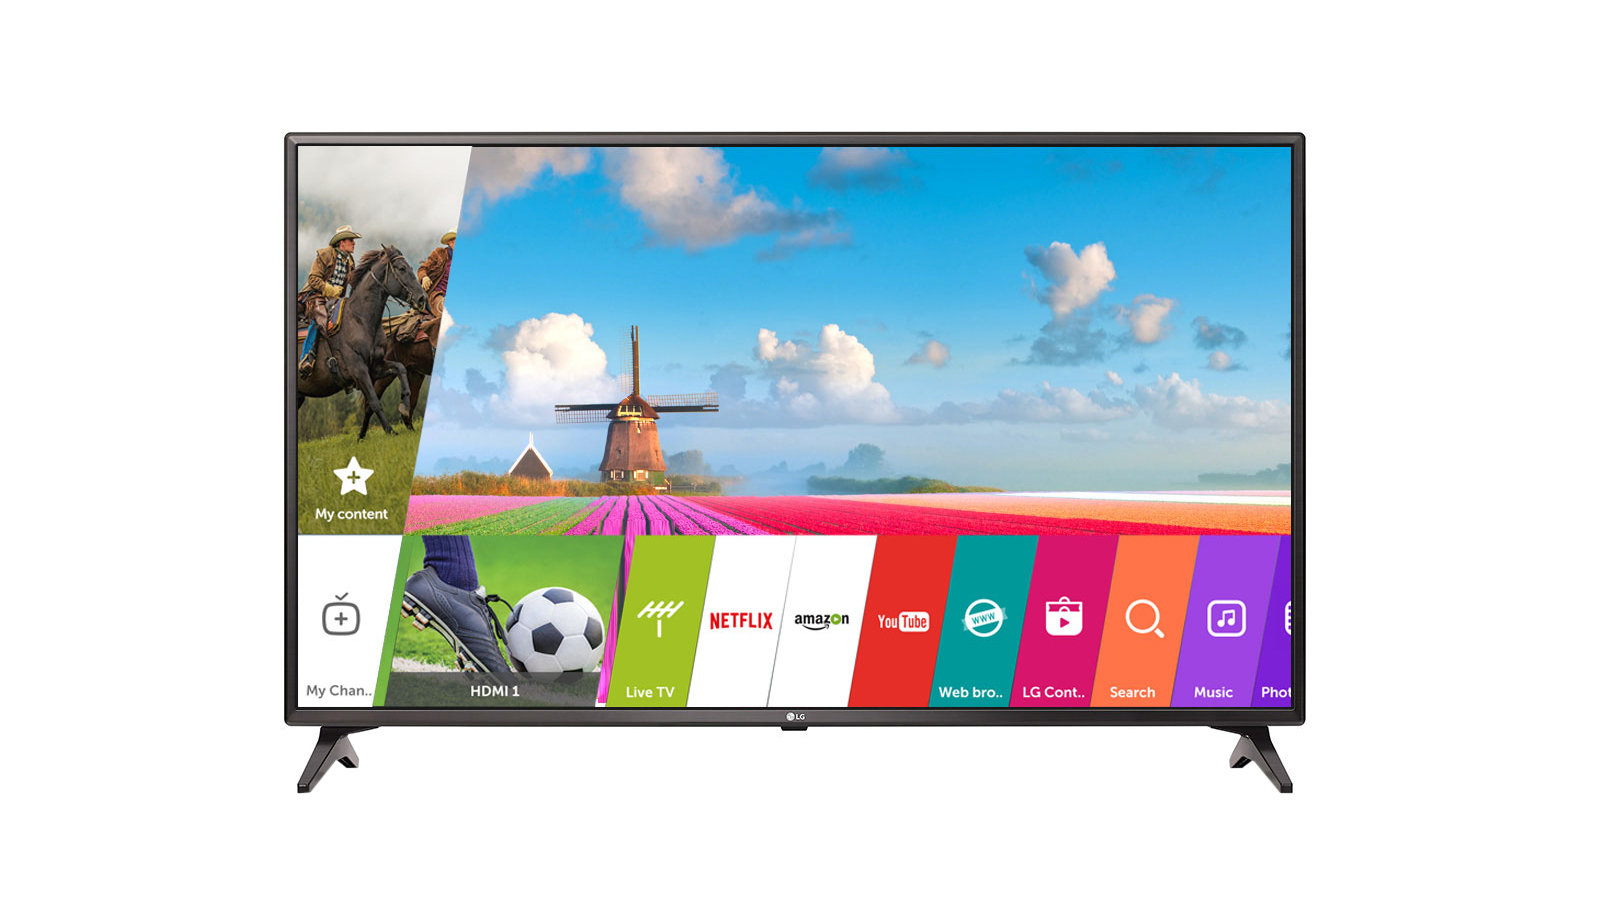 LG 43 Inches Full HD LED Smart TV (43LJ554T, Black)